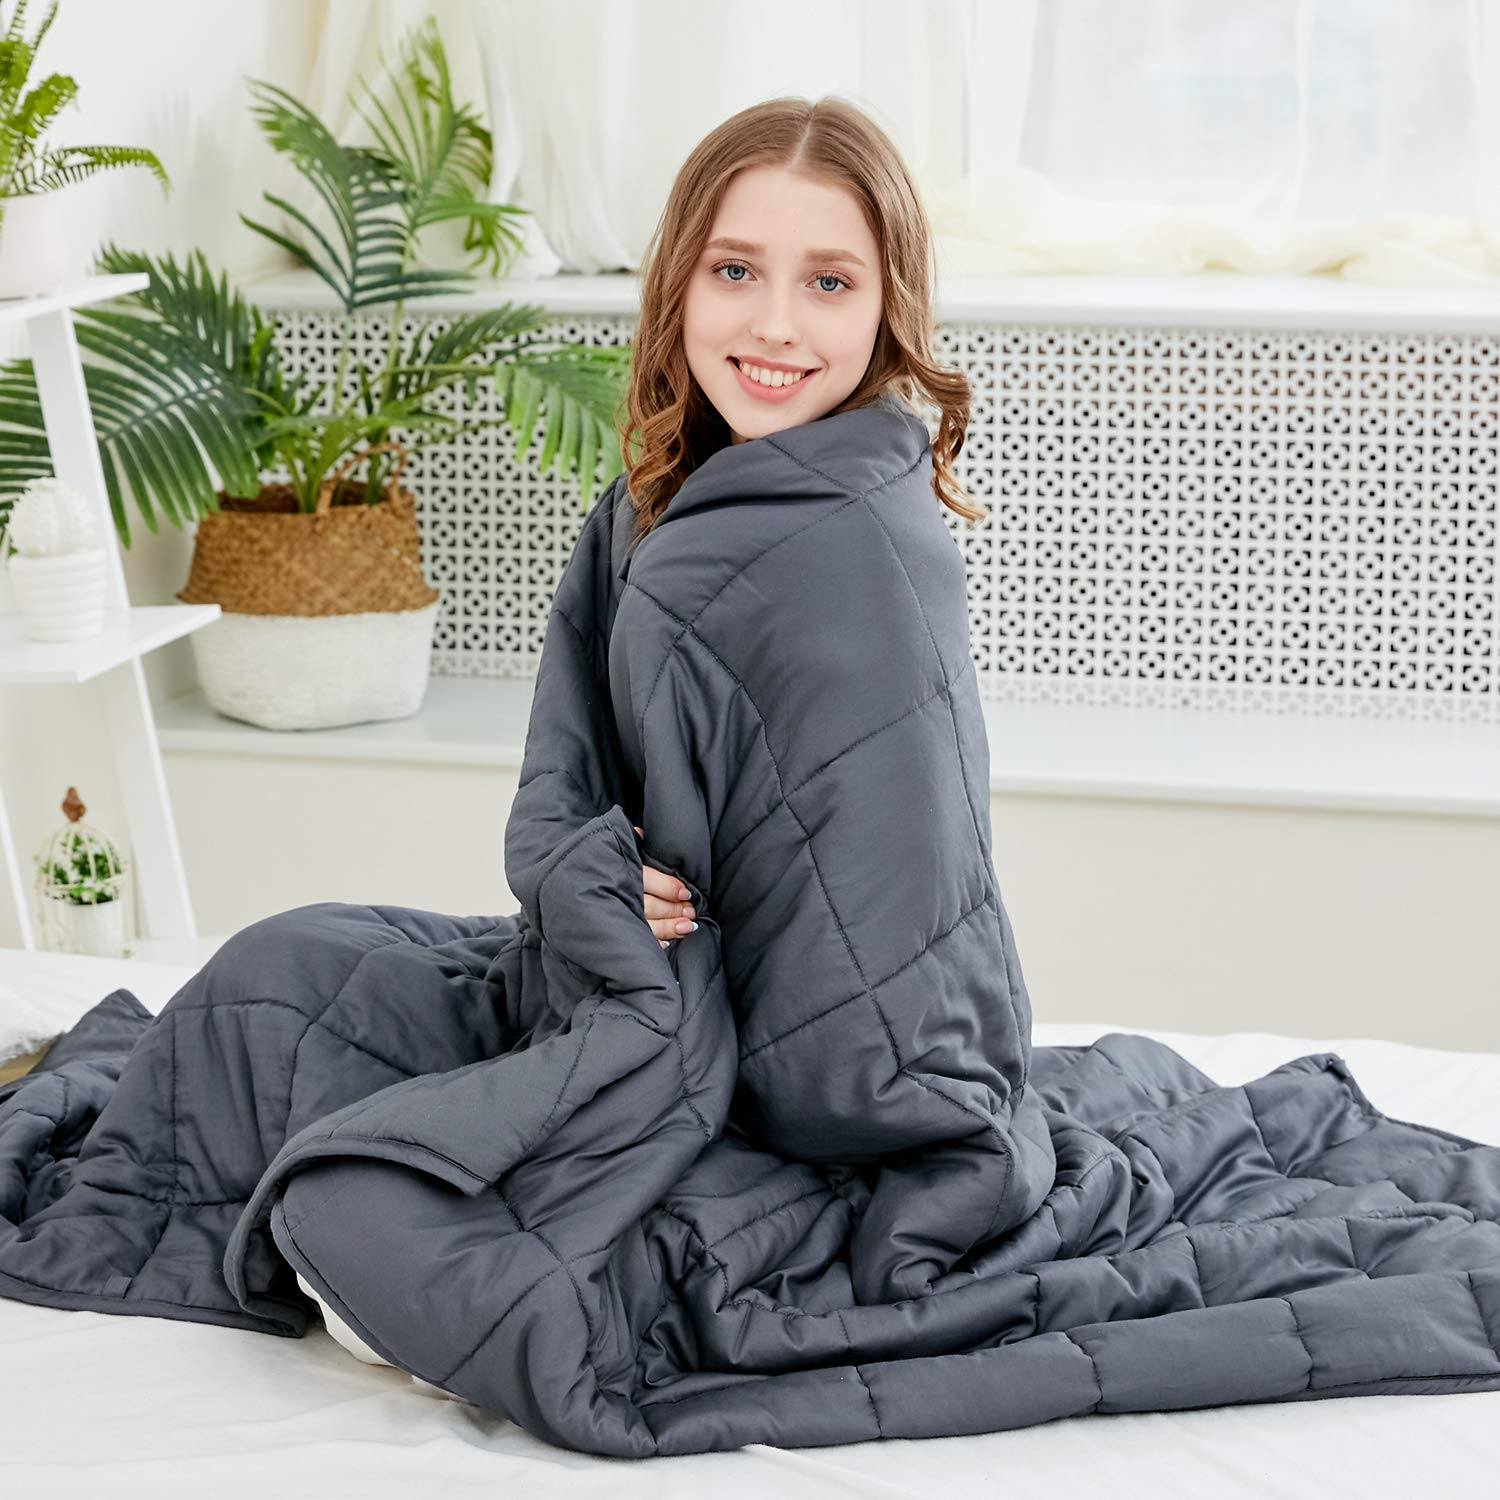 Larvinhom Weighted Blanket for Adults 60''x80'' 15lbs (for 120lbs-180lbs) Queen Size Heavy Blanket with Glass Beads Breathable 100% Cotton(Dark Grey) by Larvinhom